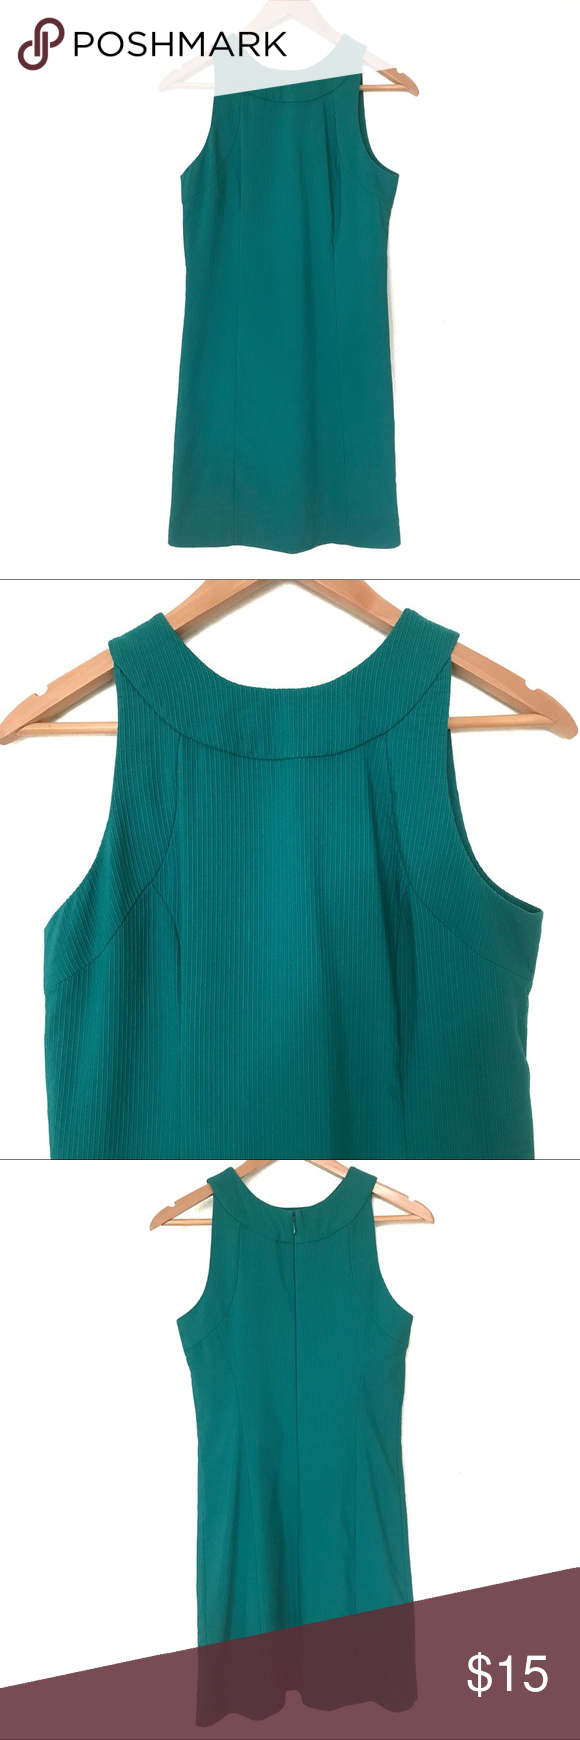 f92959cb0c35 Merona Collection Green Ribbed sleeveless dress, 2 Sleeveless green ribbed  dress from Merona Collection.